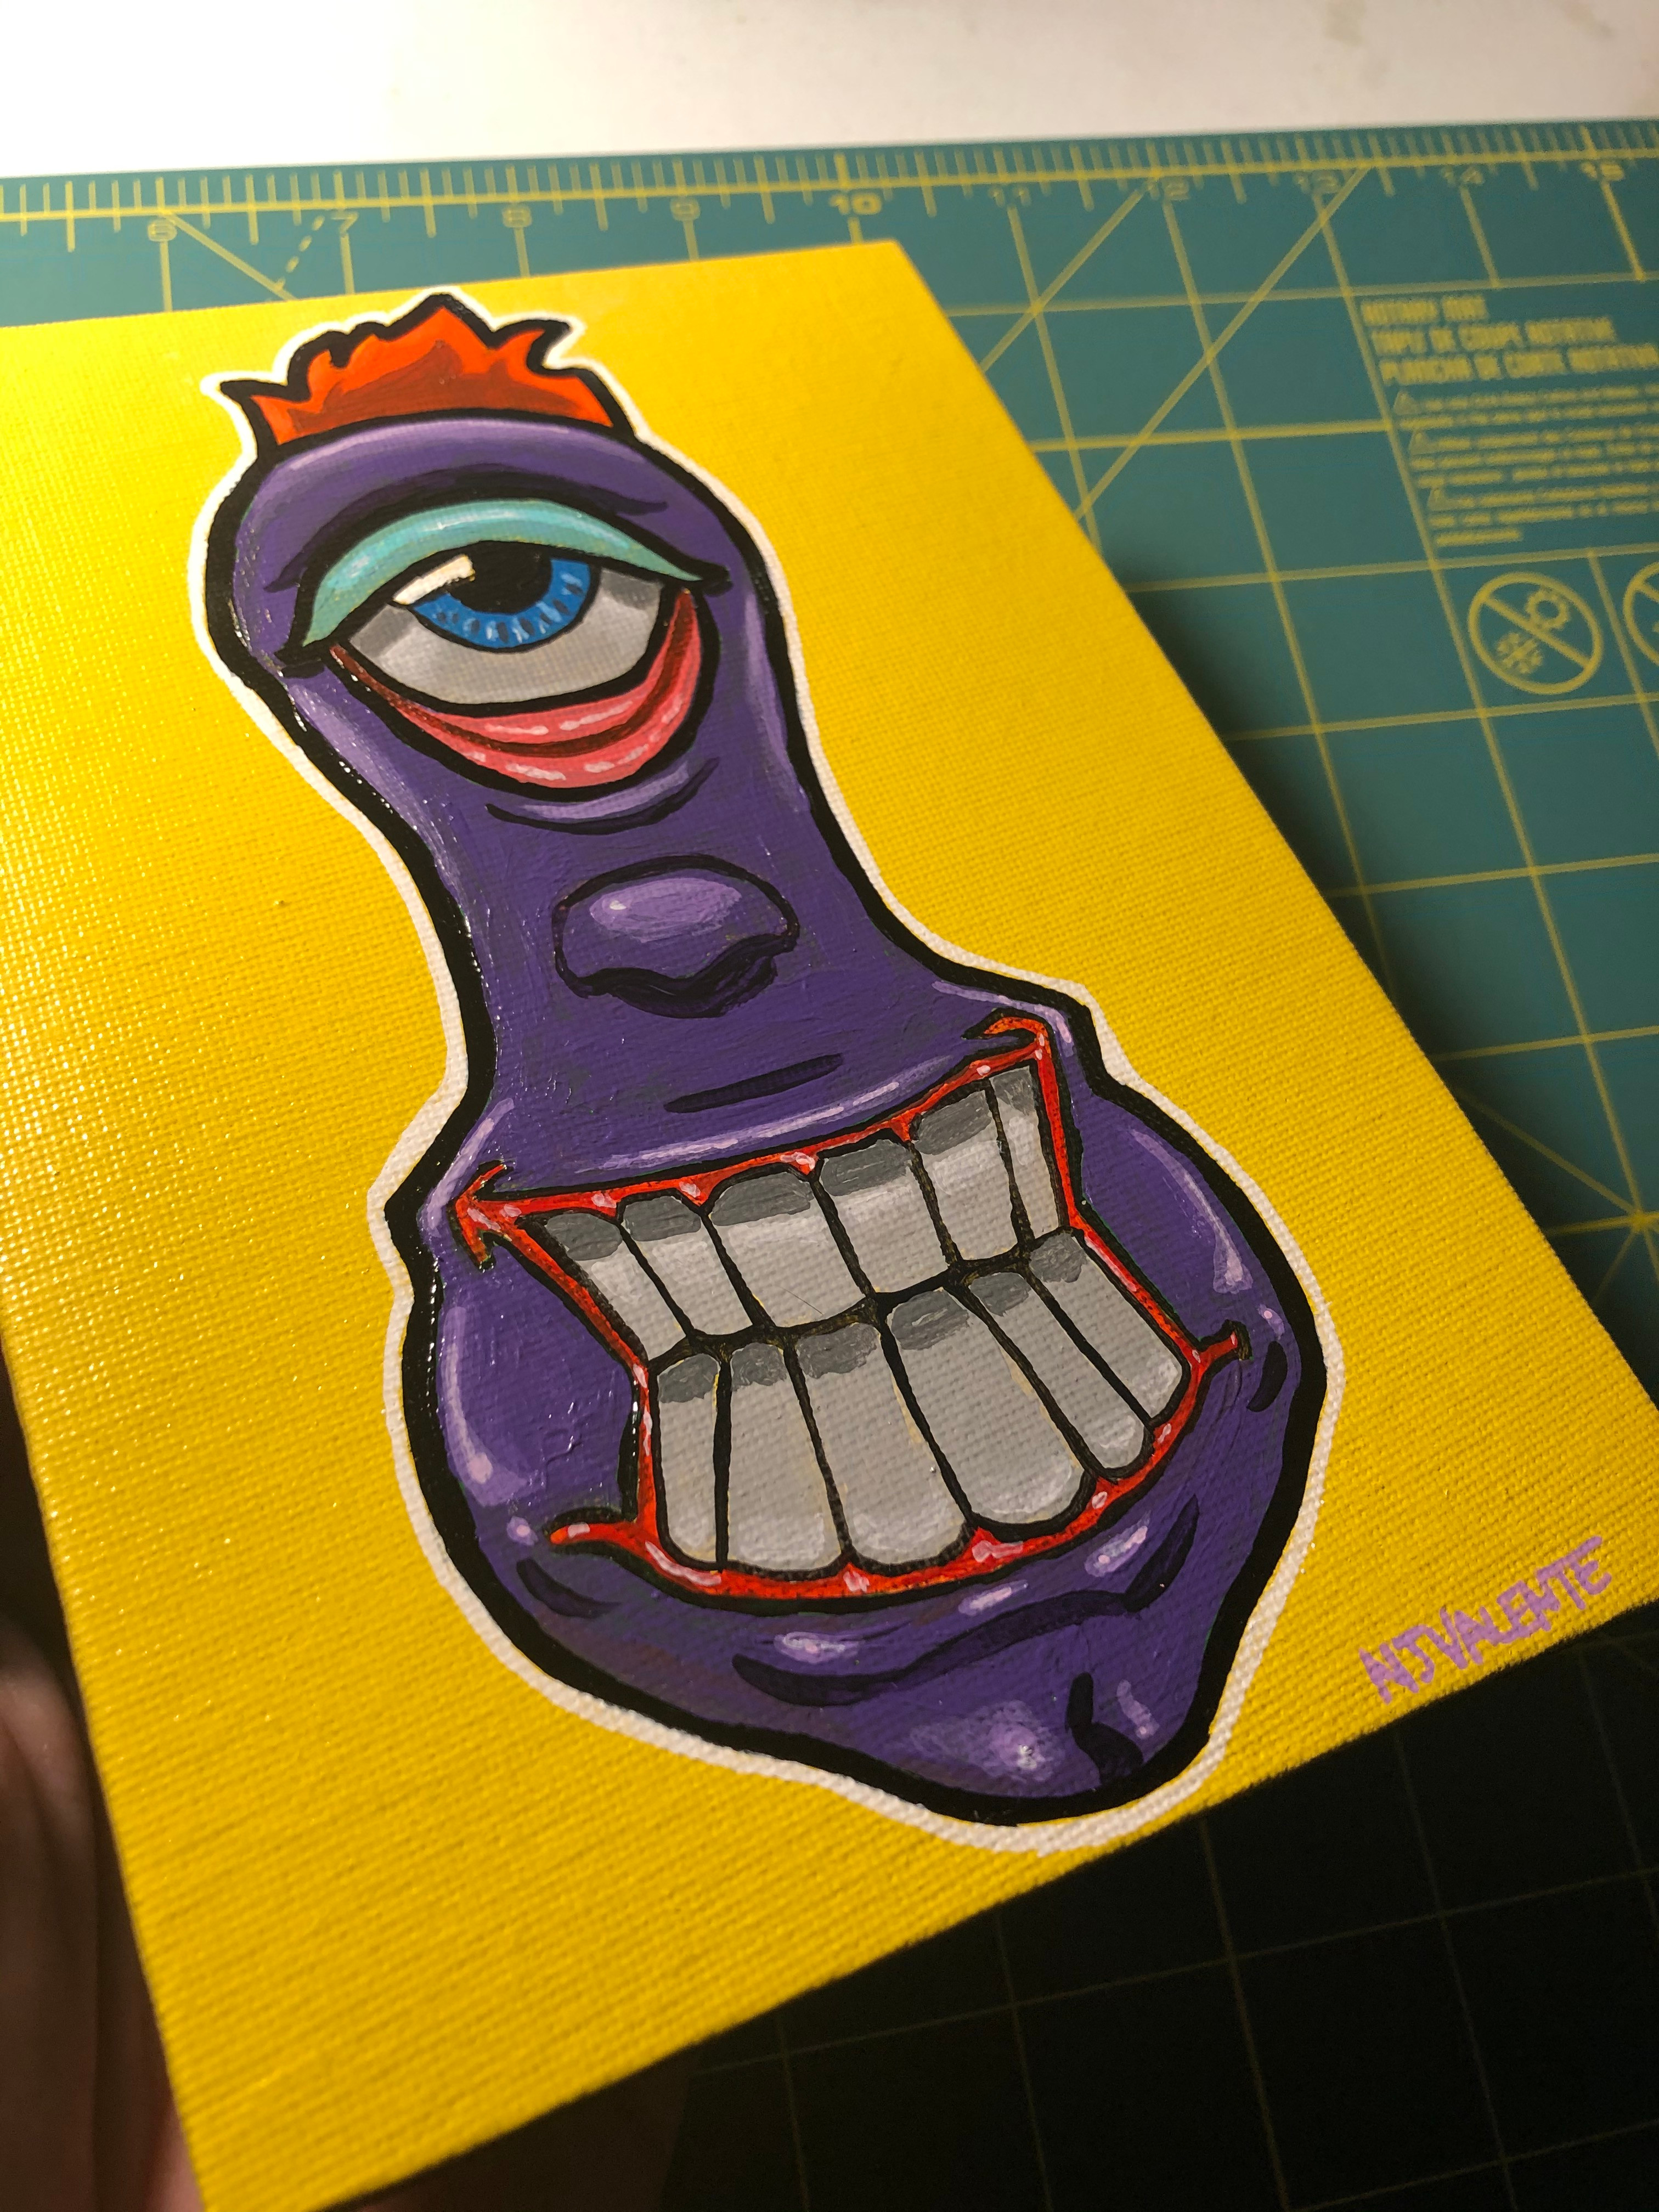 Purple Funky Face Eyeball painting, spray painted background. Character art don in acrylic paint.